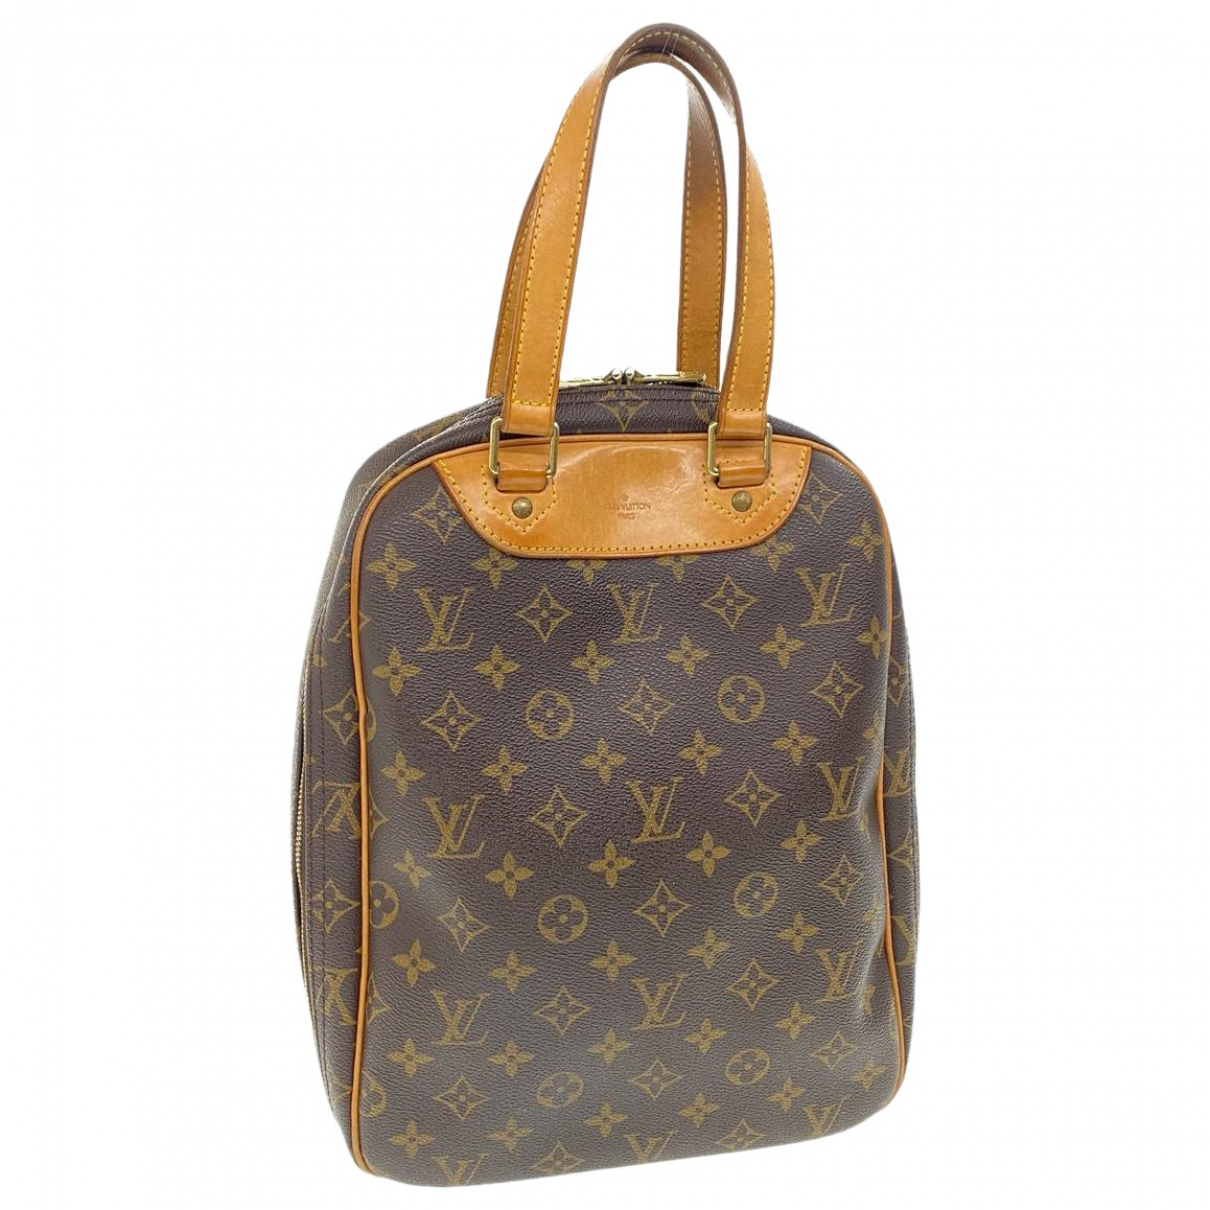 Louis Vuitton - Sac a main Excursion  pour femme en toile - marron